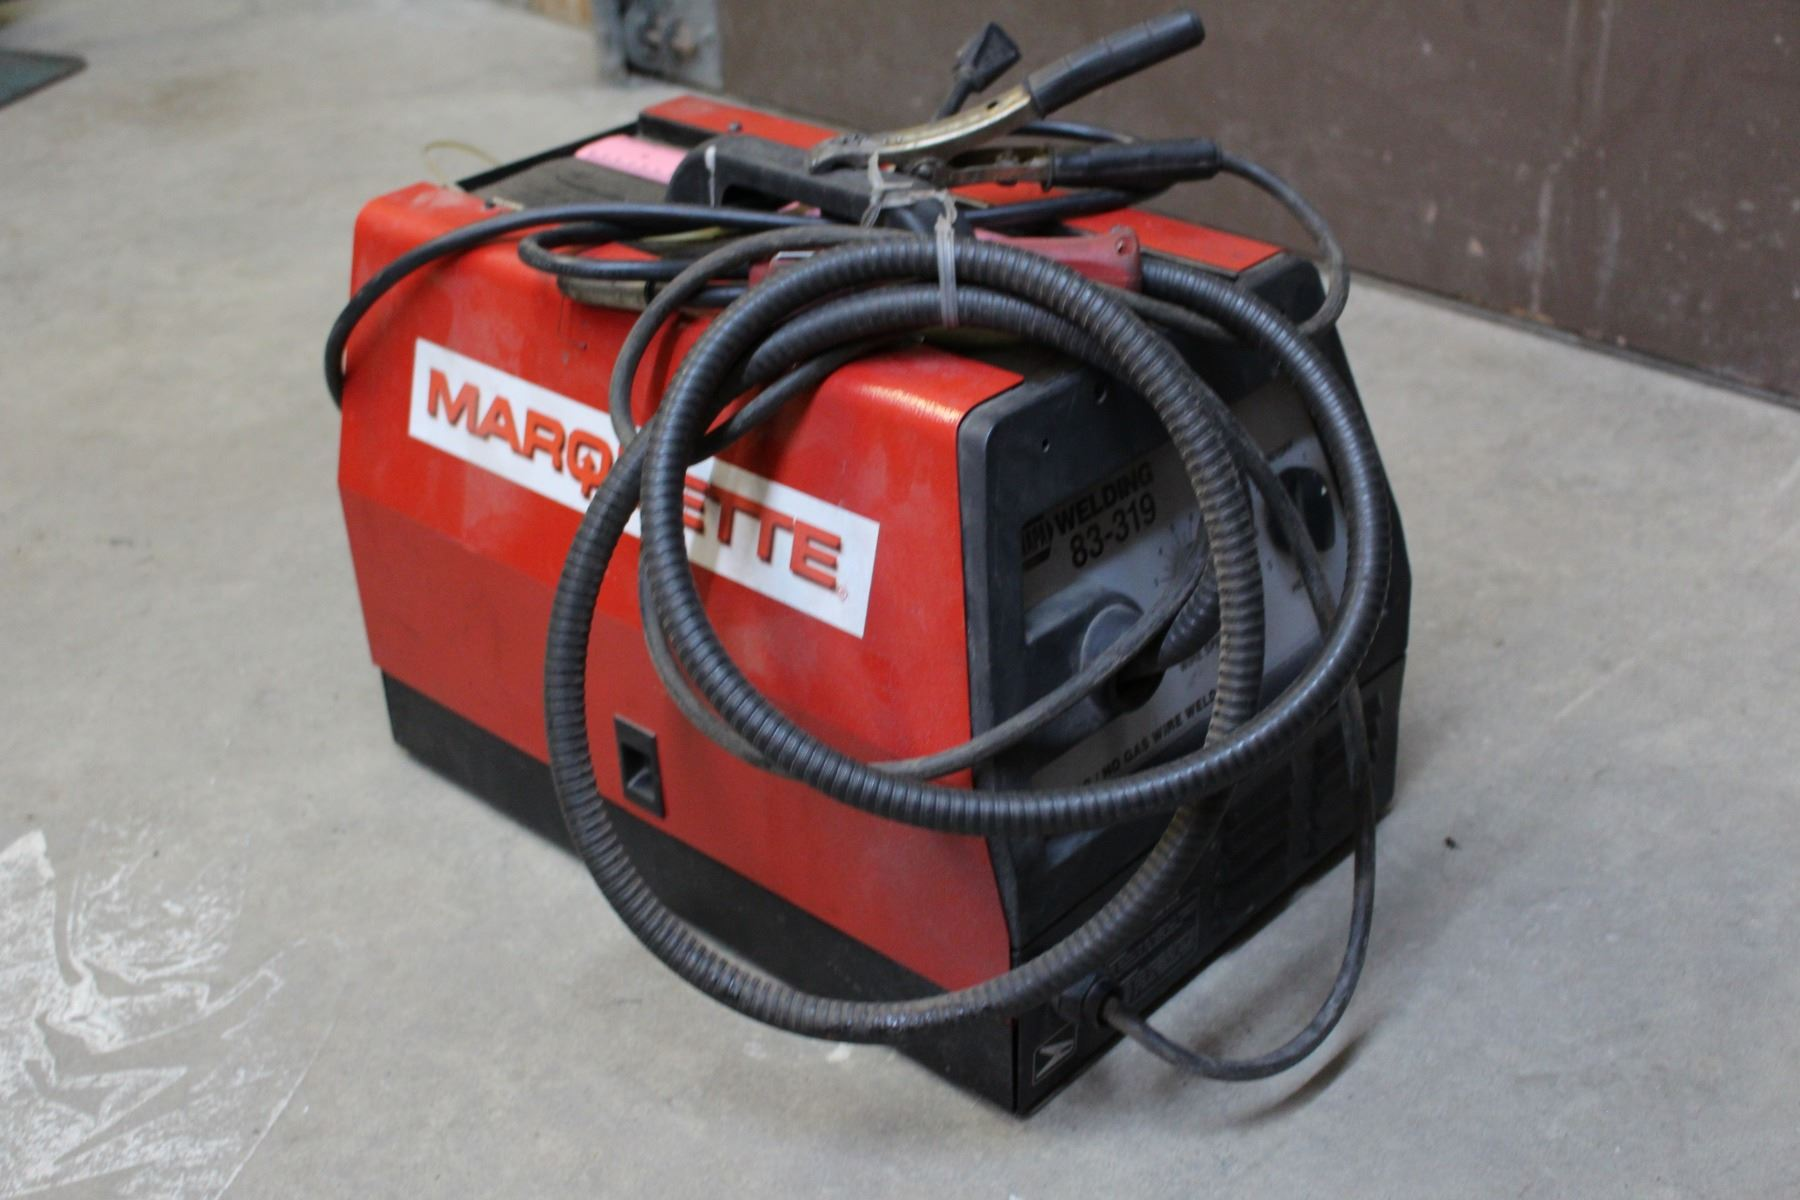 Marquette Mig Welder Complete Parts Related Keywords Suggestions Image 1